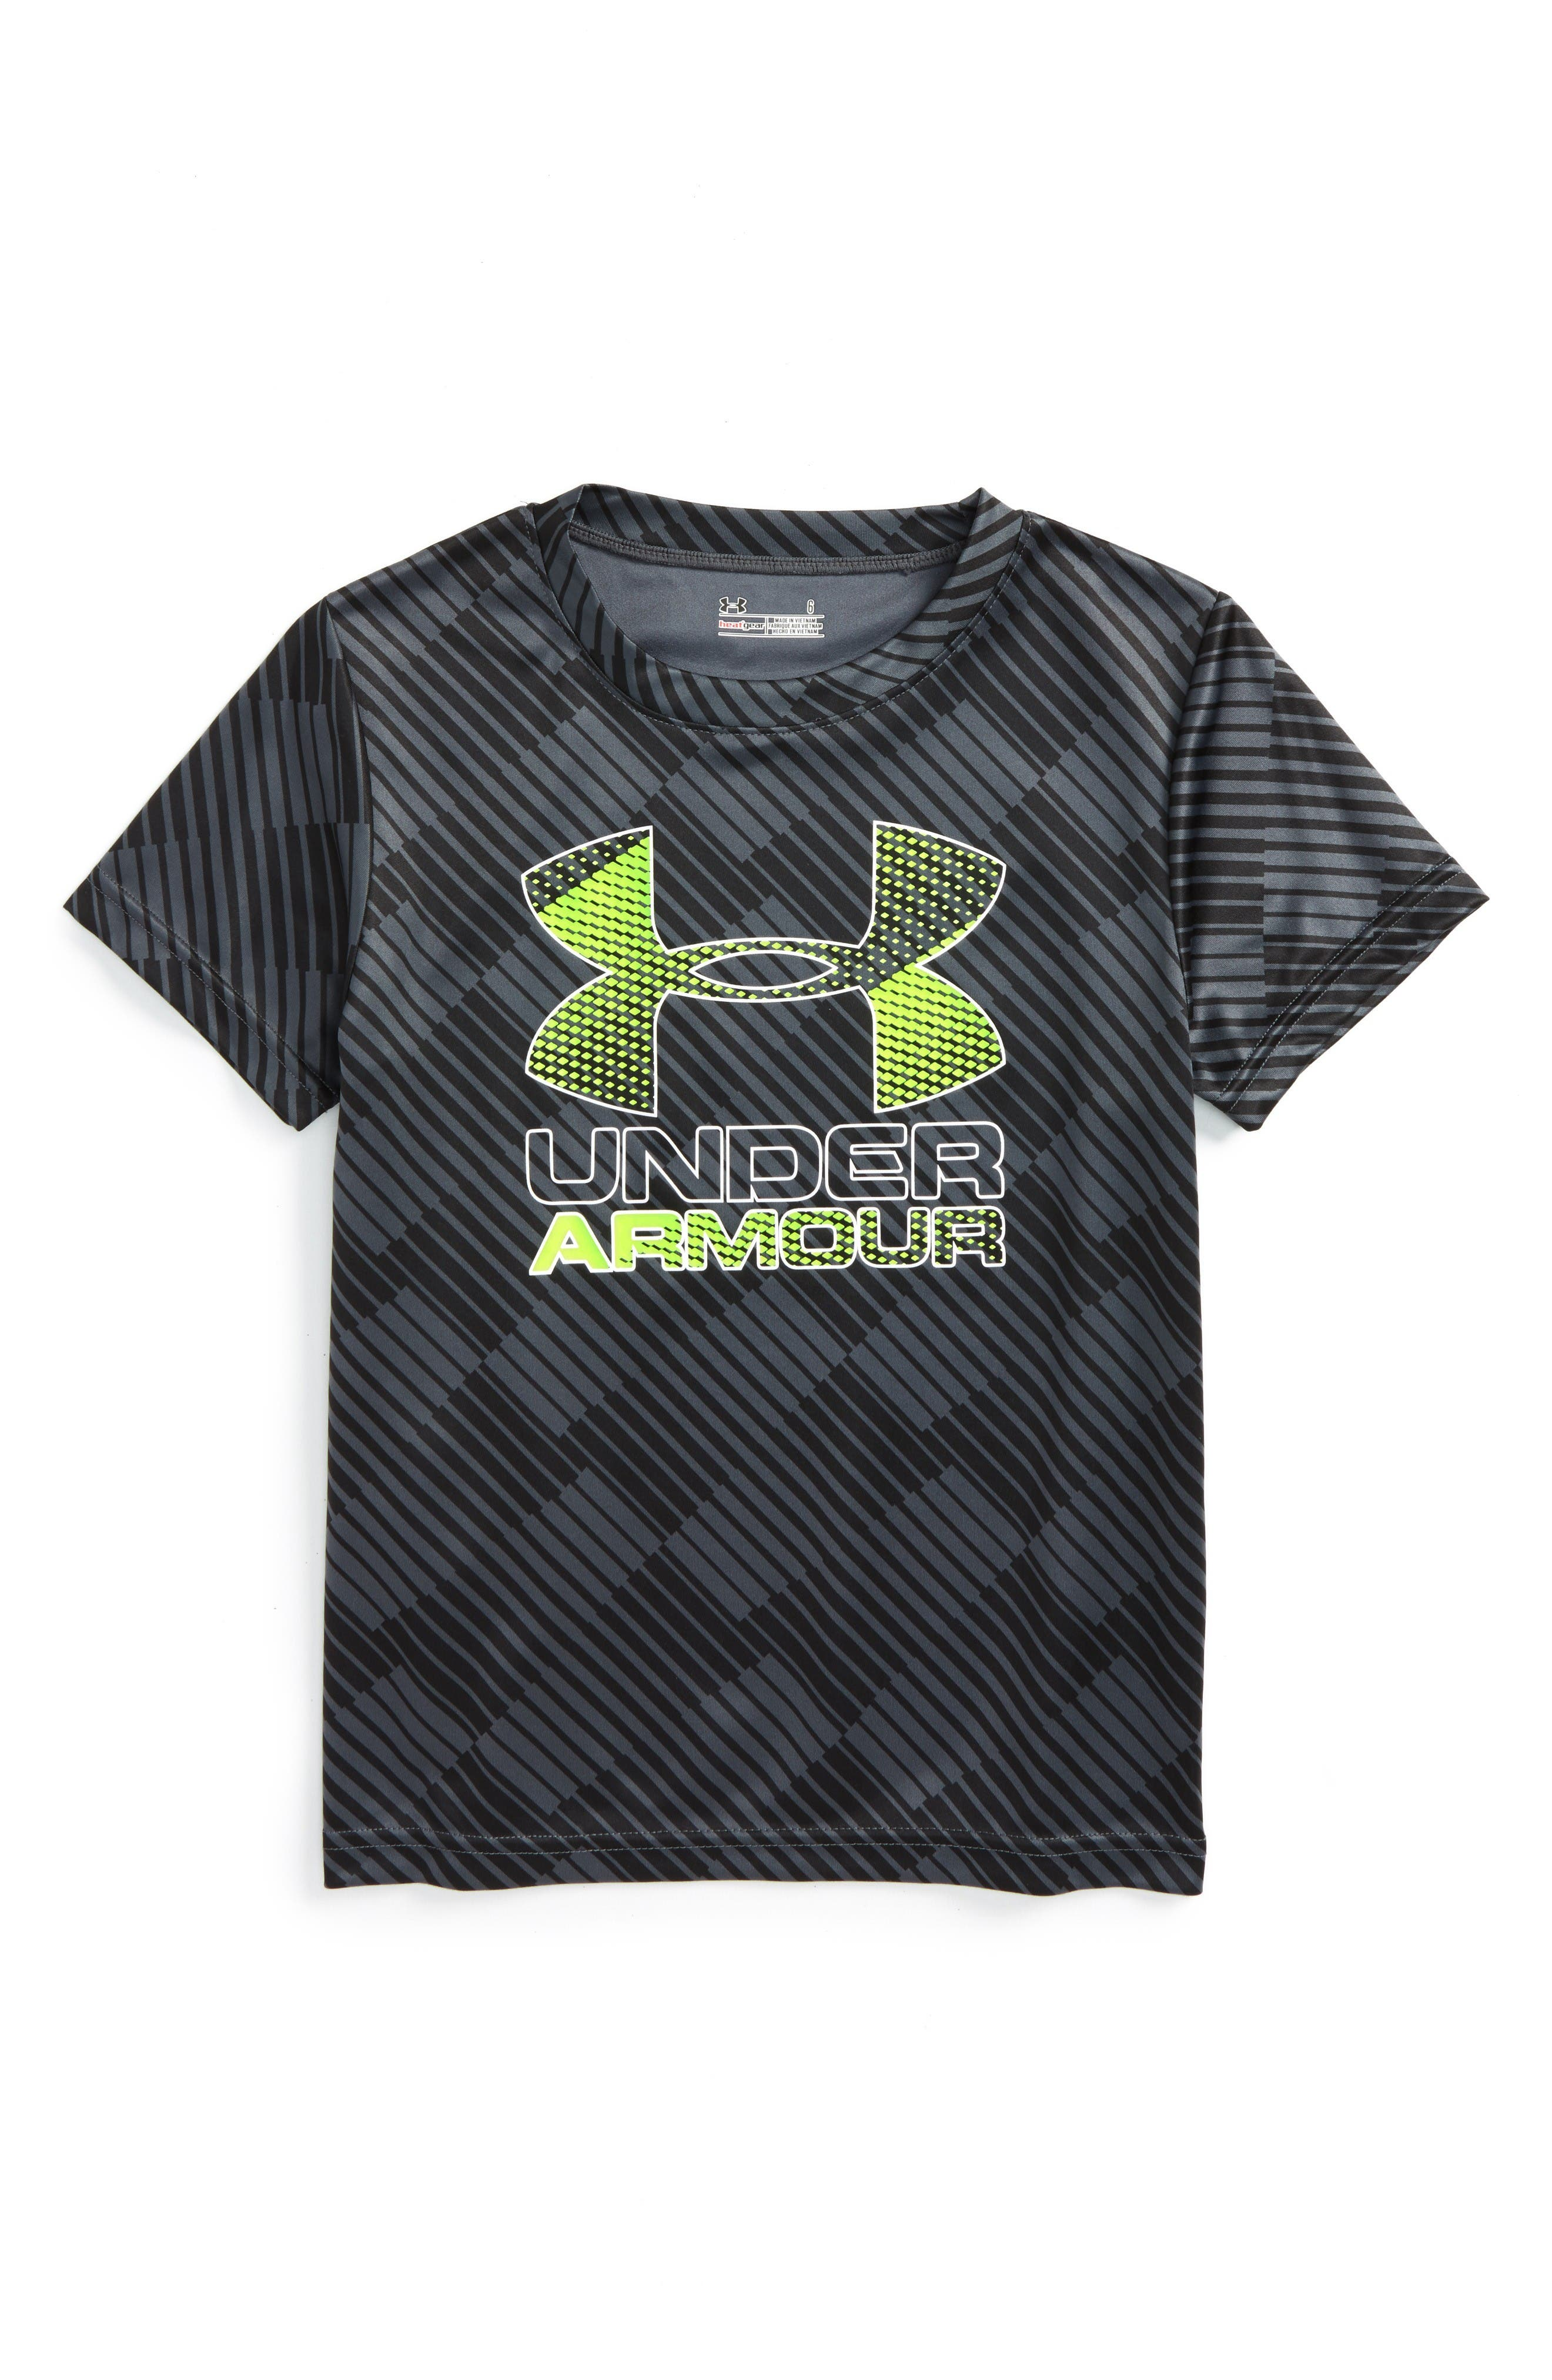 Under Armour Tilt Shift Graphic HeatGear® Shirt (Toddler Boys & Little Boys)